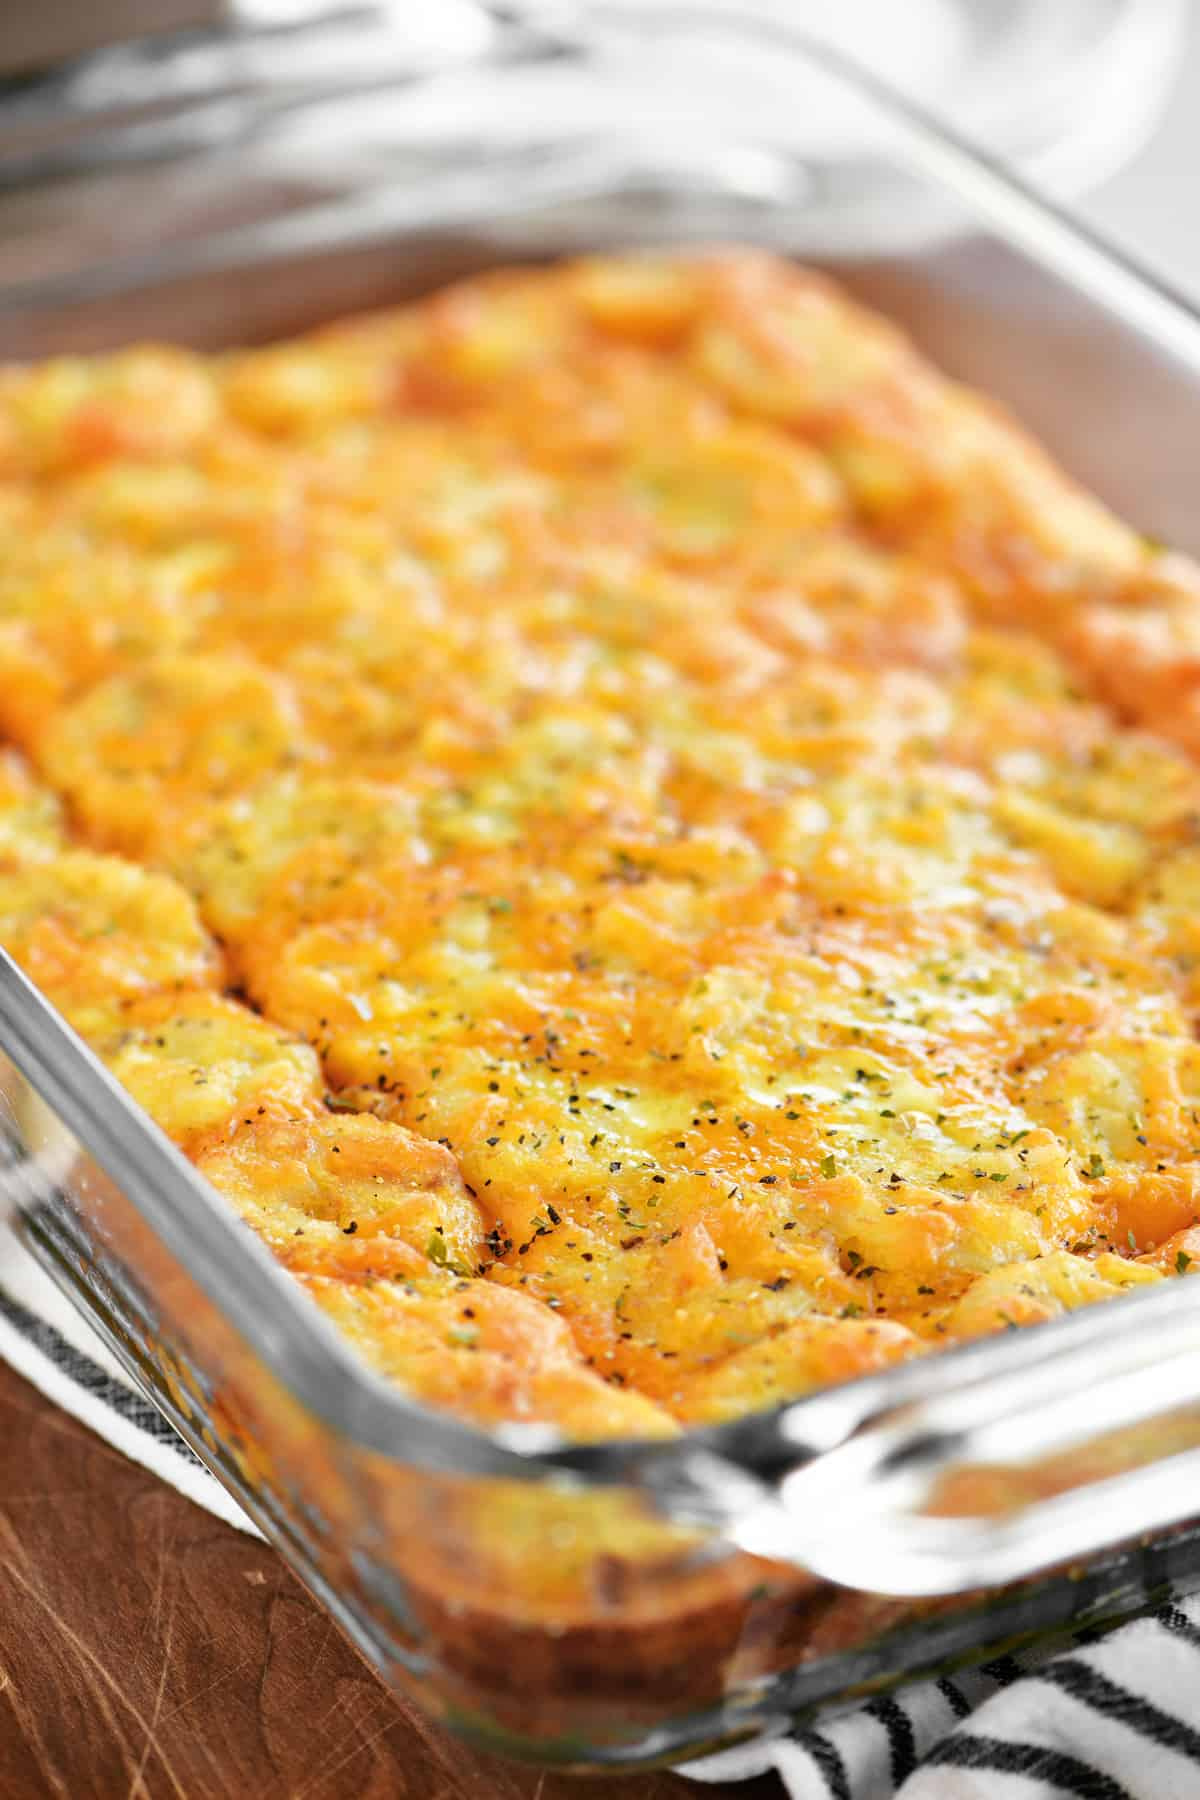 a photo of the baked casserole